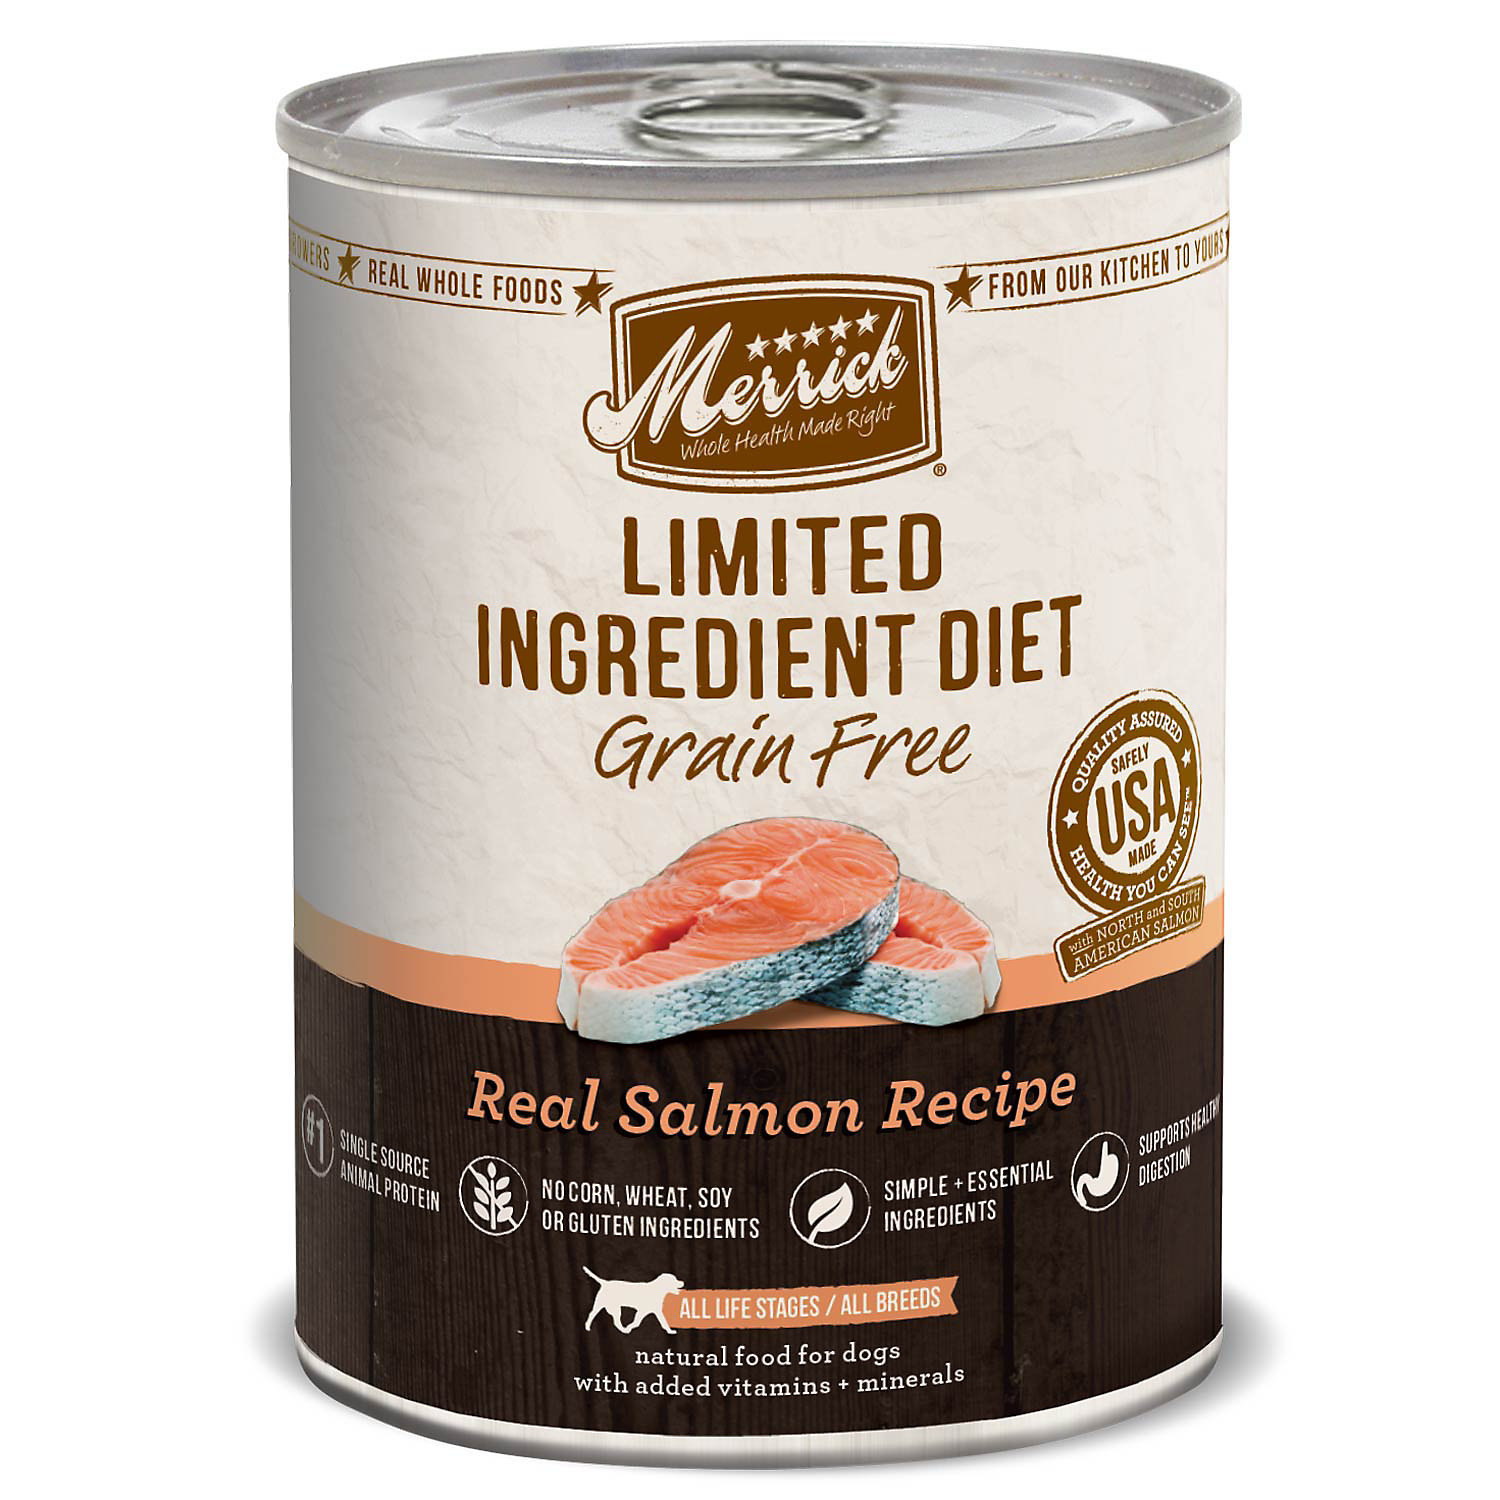 Merrick Limited Ingredient Diet Real Salmon GRAIN FREE Recipe Pet Food, 12.7-Ounce, 12-Pack (4/17) (A.A.2)